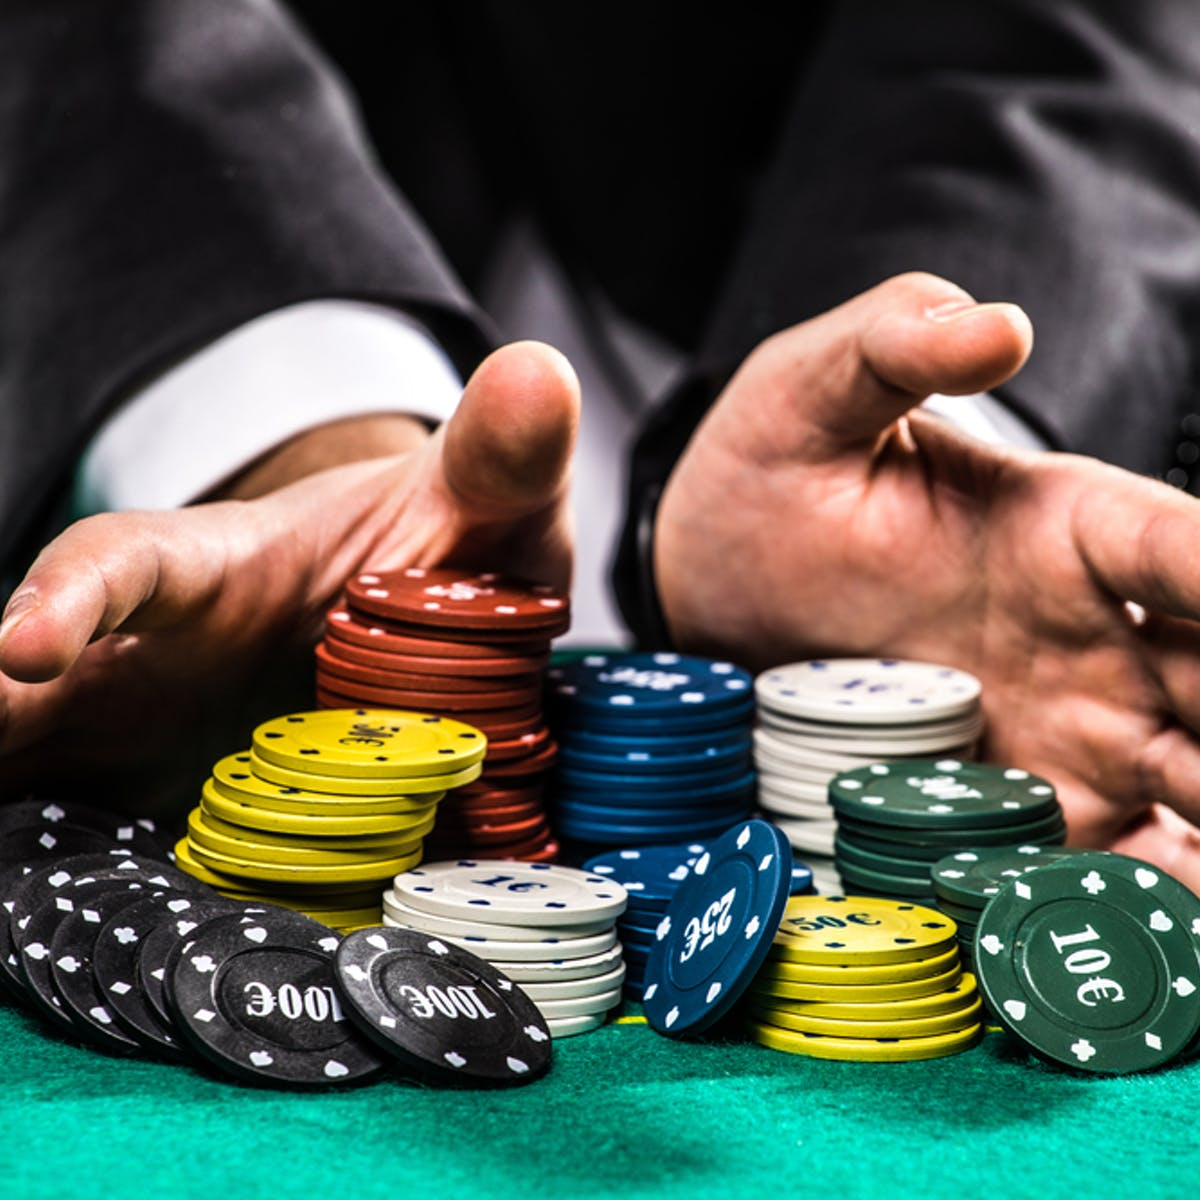 The financial sector is professional gambling in action